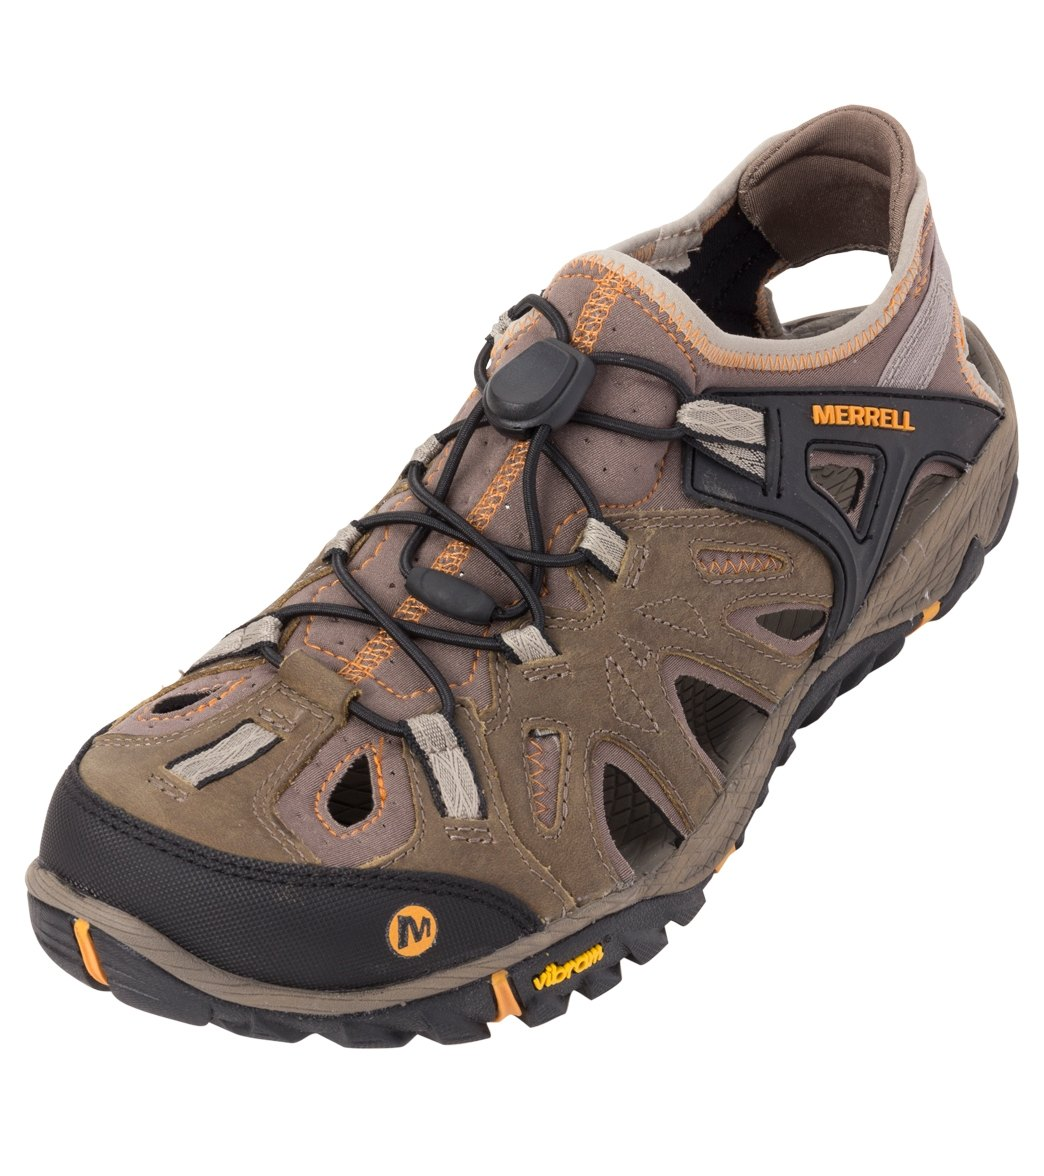 Merrell Men's All Out Blaze Sieve Water Shoes at SwimOutlet.com ...